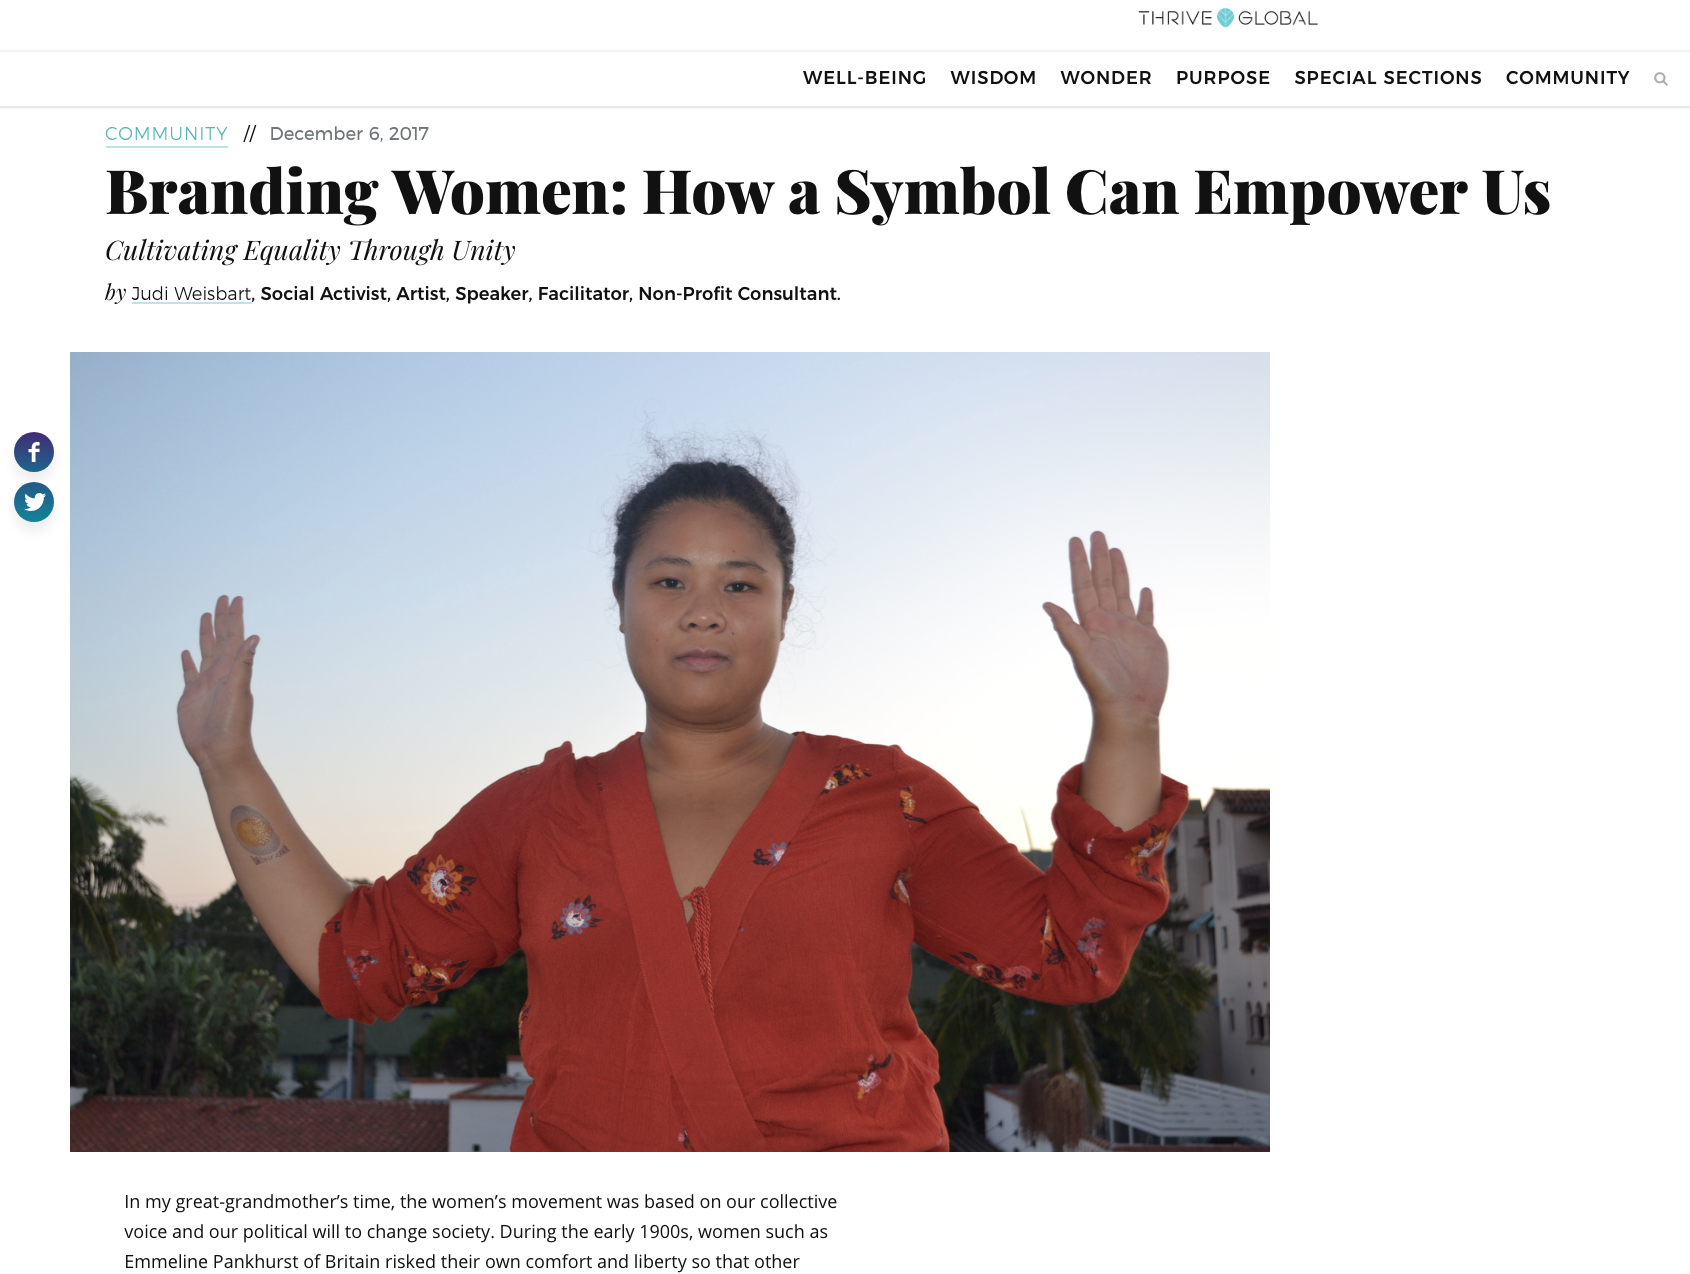 THRIVE GLOBAL                                                      View Article: https://www.thriveglobal.com/stories/18280-branding-women-how-a-symbol-can-empower-us